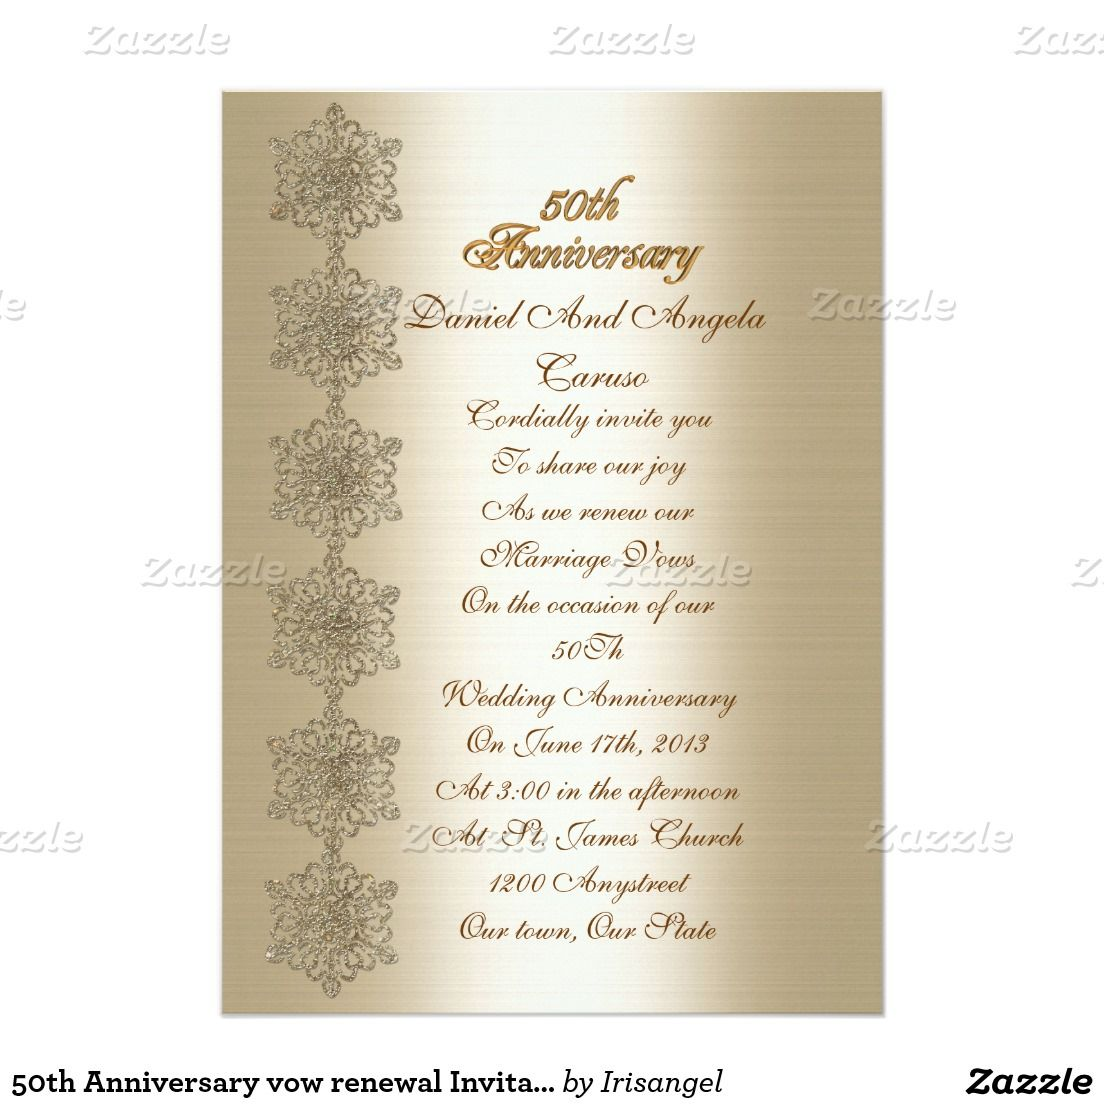 50th Anniversary vow renewal Invitation | Vows, Anniversaries and Cards